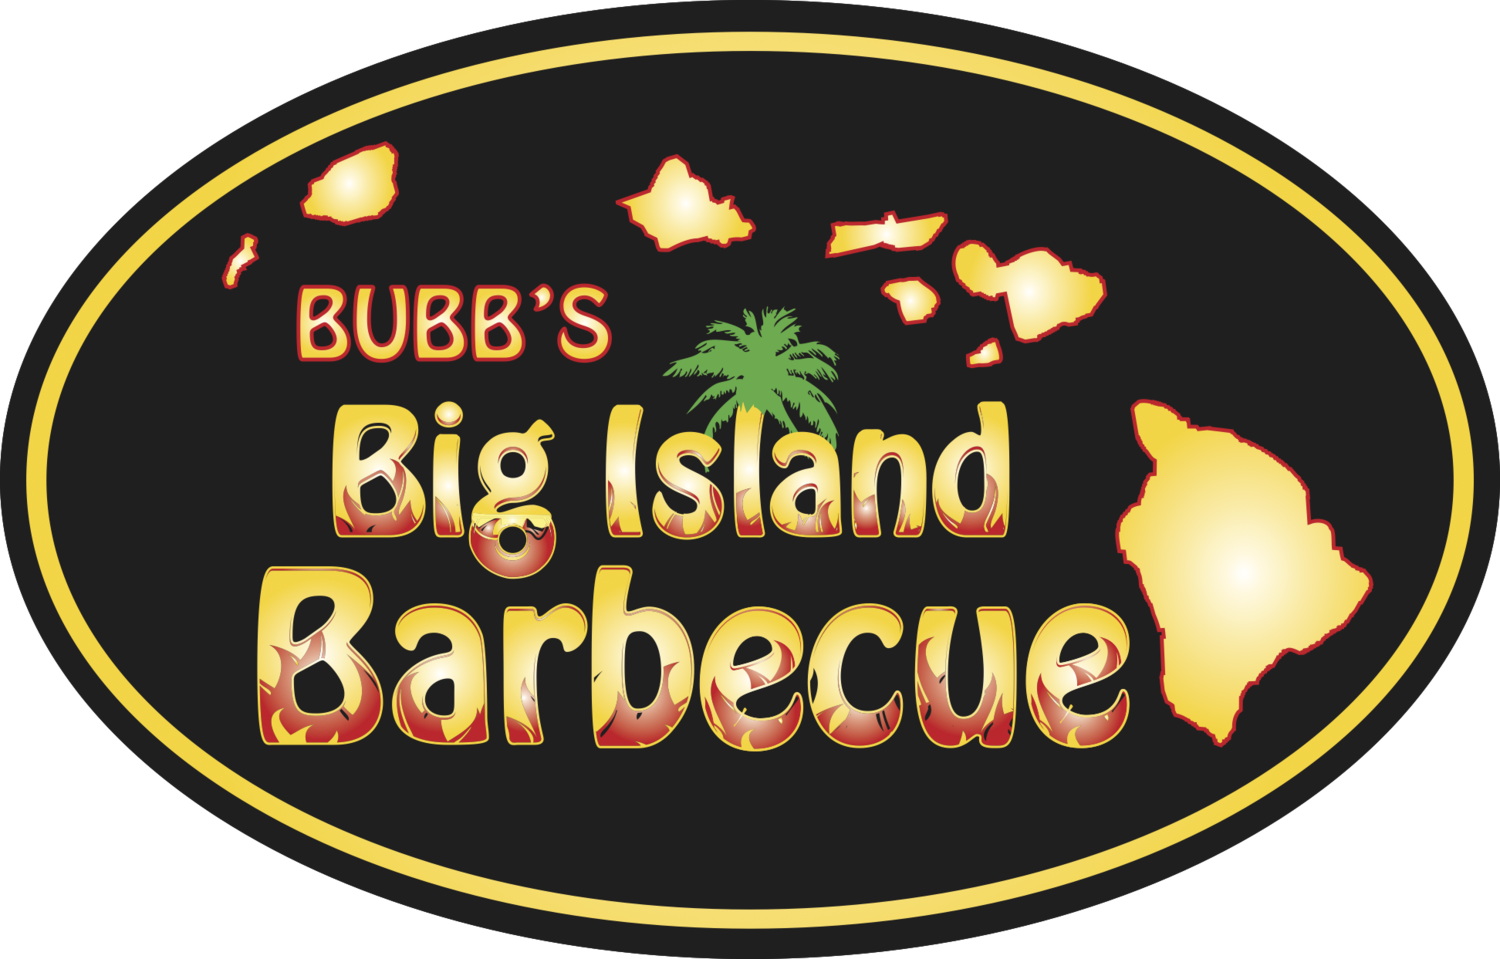 Bubb's Big Island Barbecue